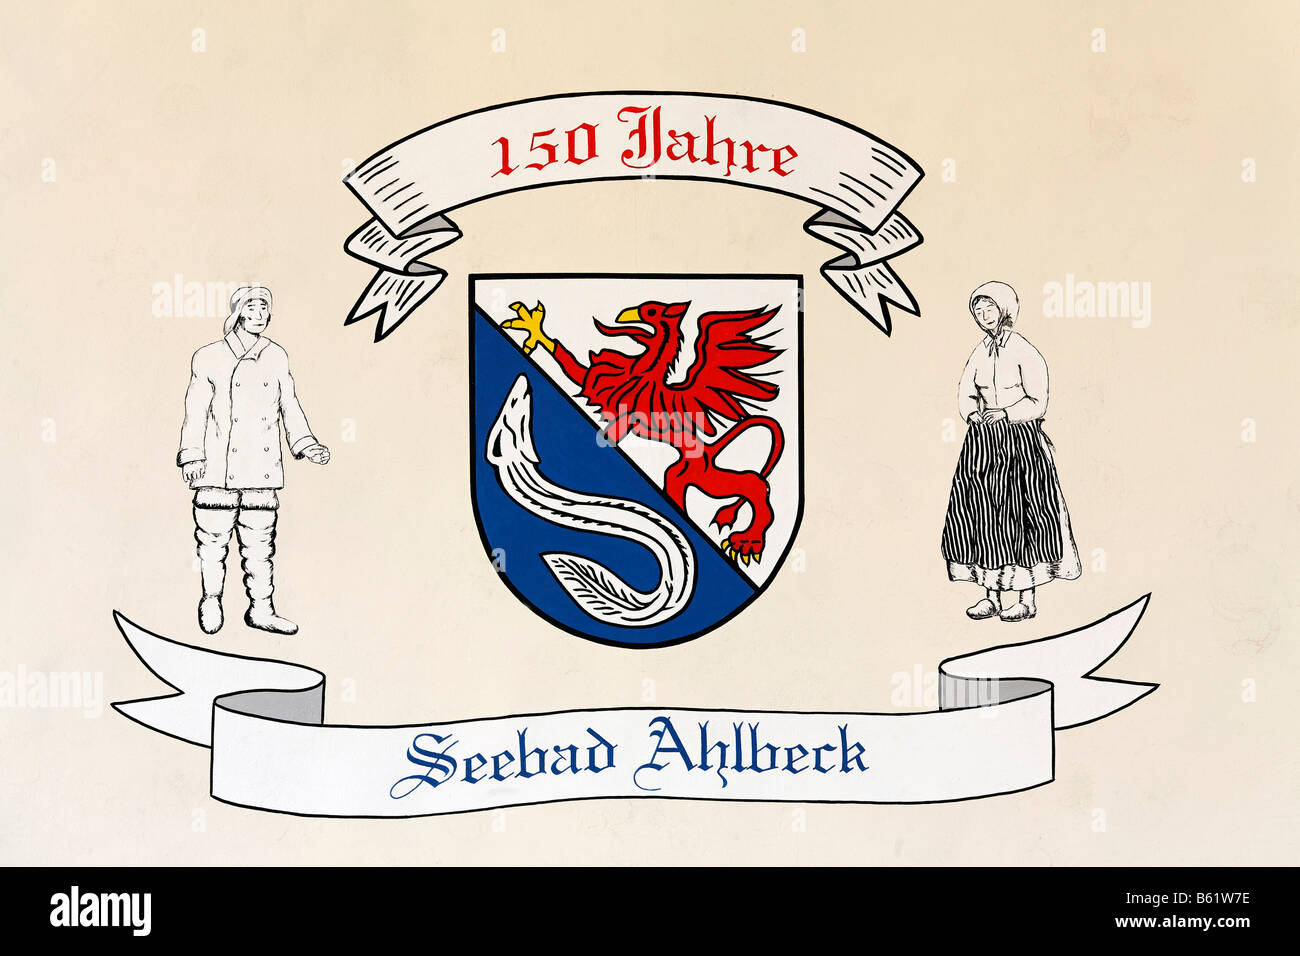 Crest made for the 150 anniversary of Ahlbeck, with sketched figures, Usedom Island, Baltic Sea, Mecklenburg-Western - Stock Image